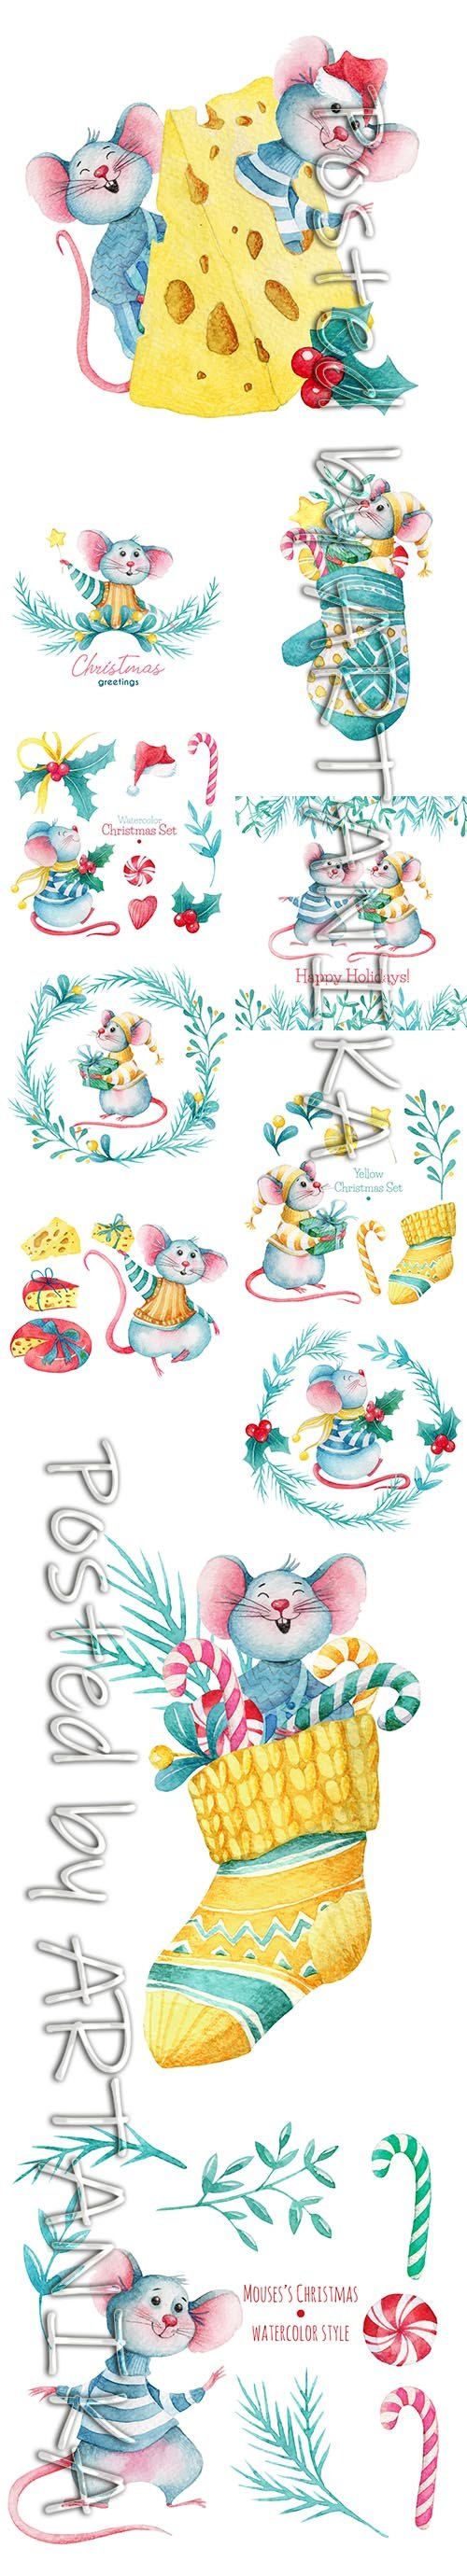 Hand-Drawn Watercolor Mouse Christmas Illustration Set